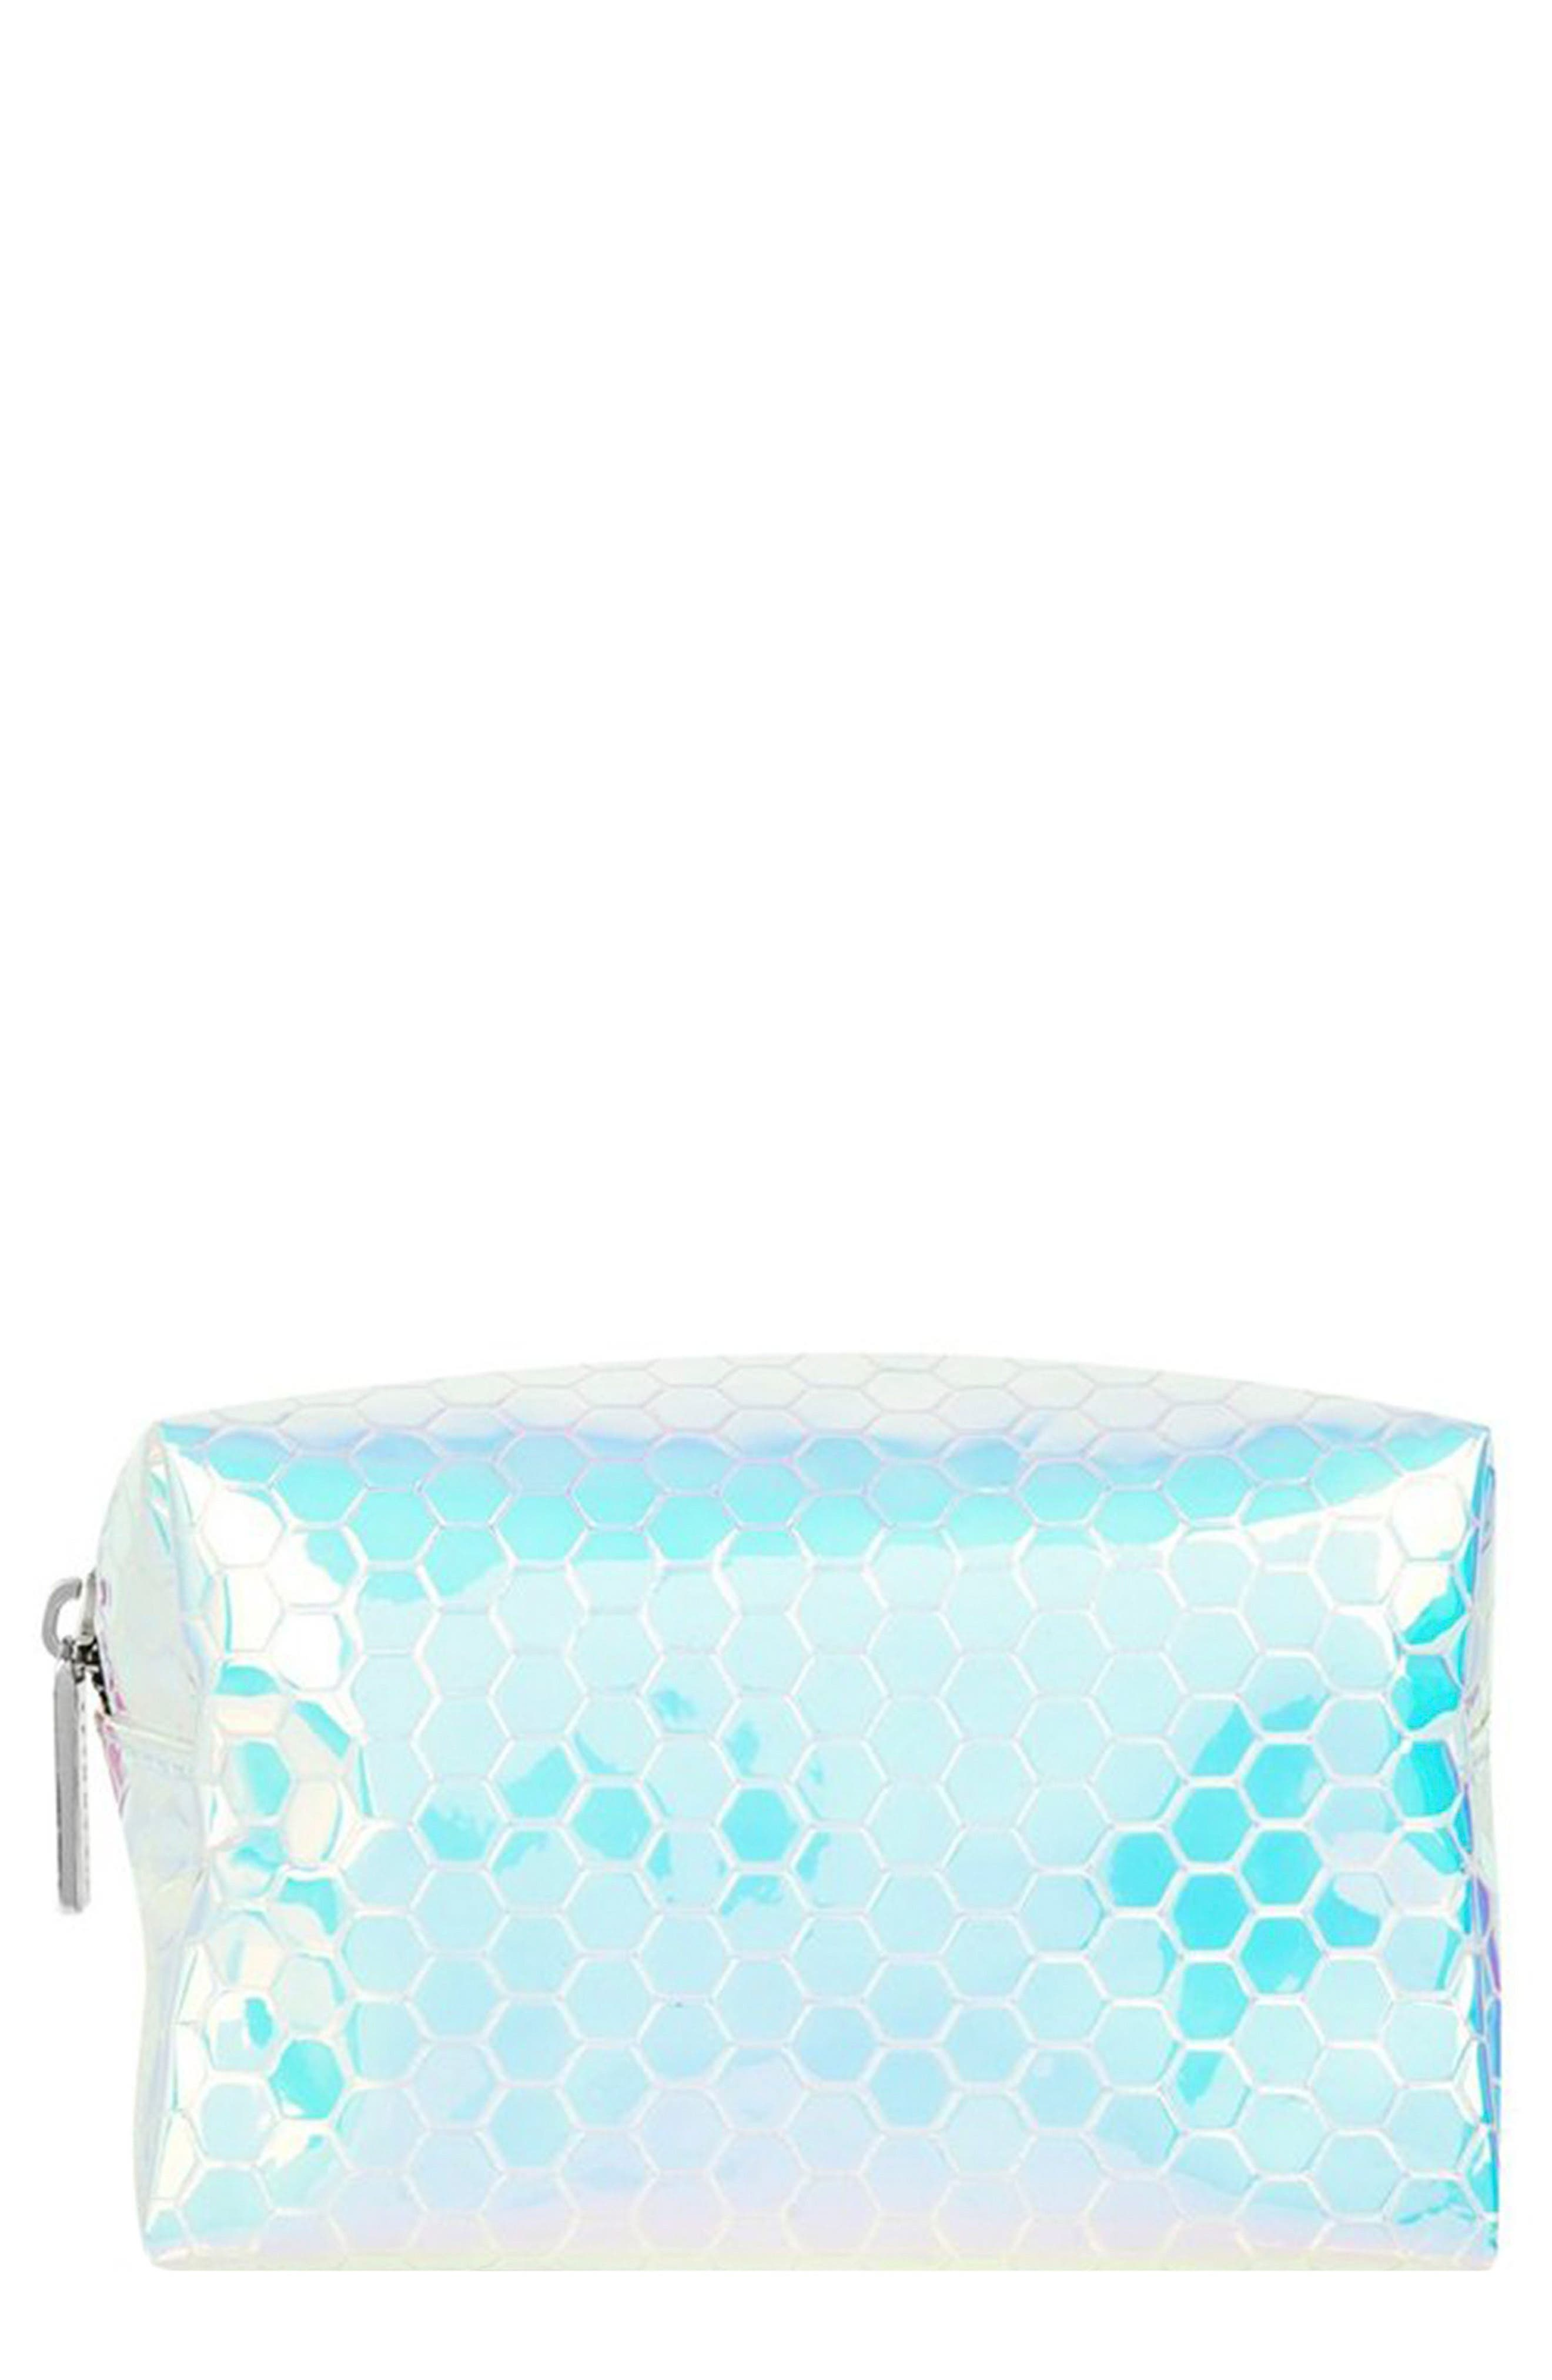 Skinny Dip Honeycomb Makeup Bag,                             Main thumbnail 1, color,                             No Color